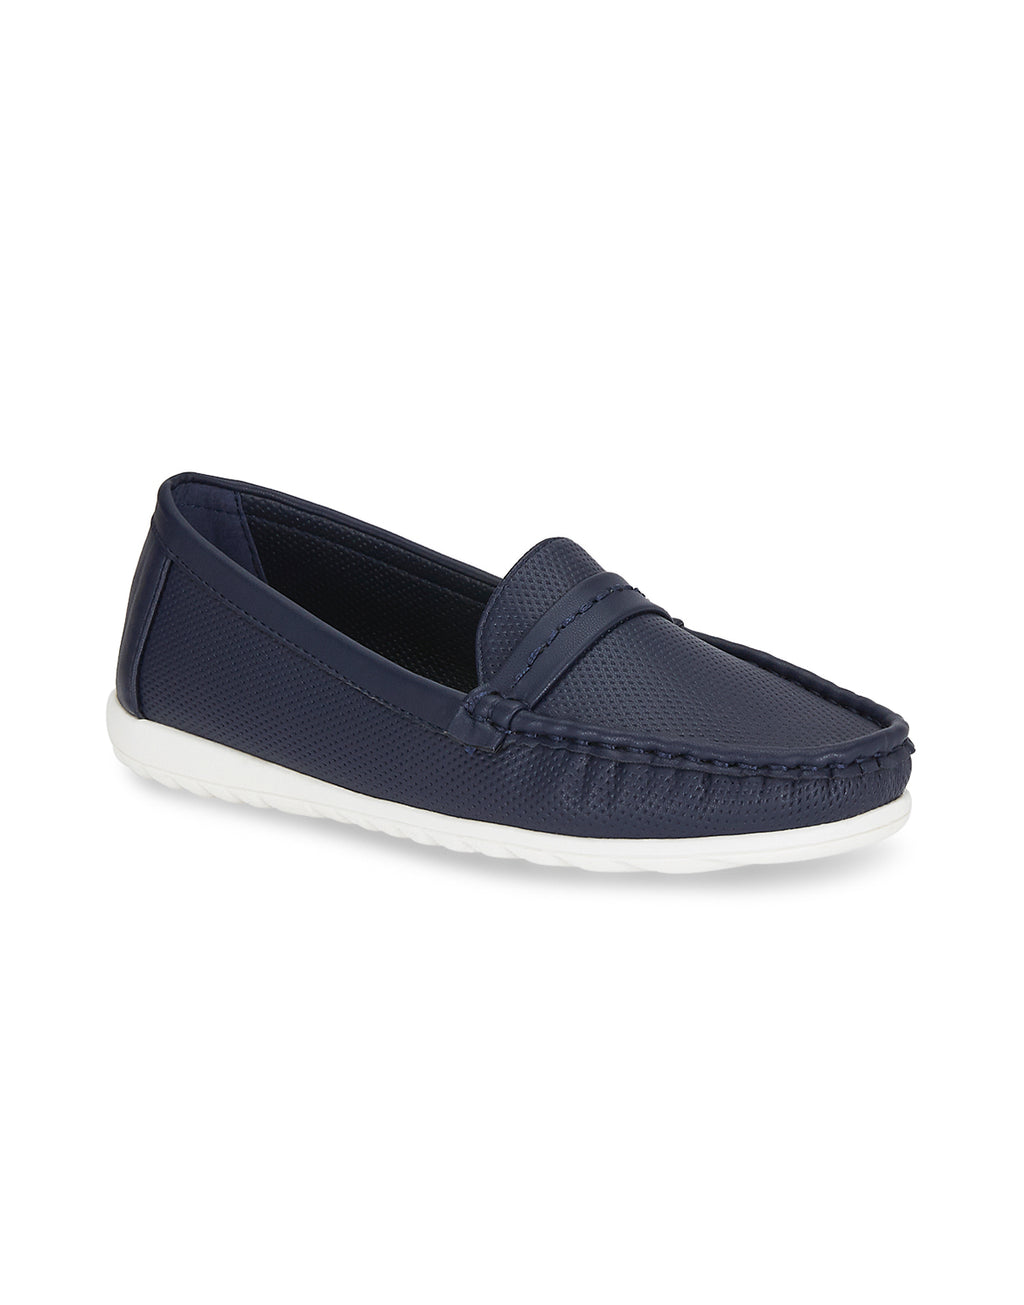 Brianna Mod Navy Loafers